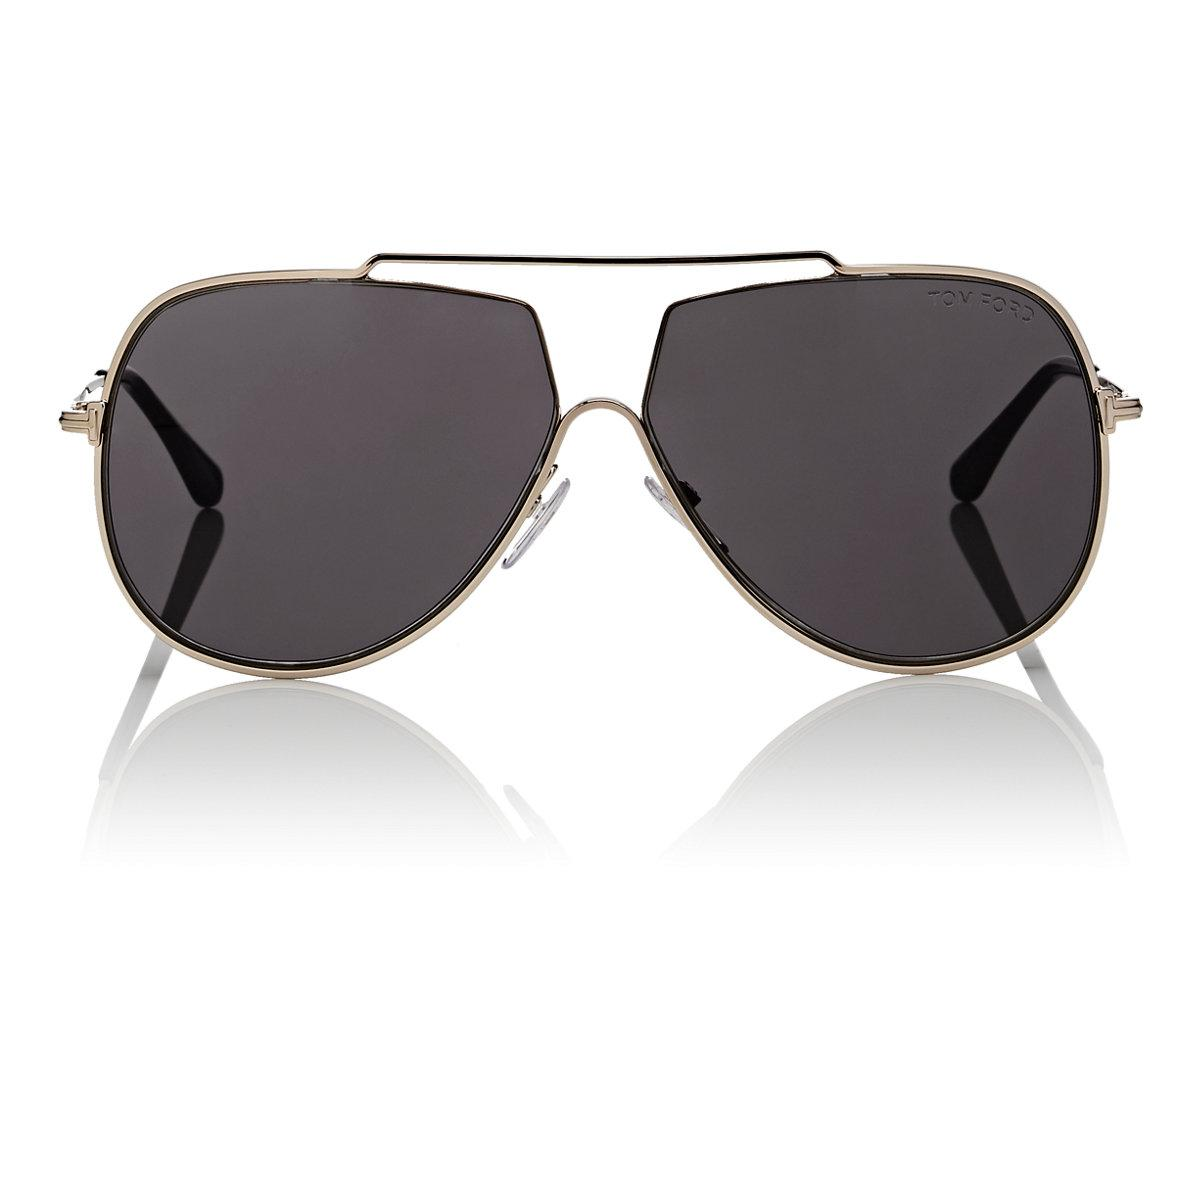 255707c82d1c Lyst - Tom Ford Chase Sunglasses in Metallic